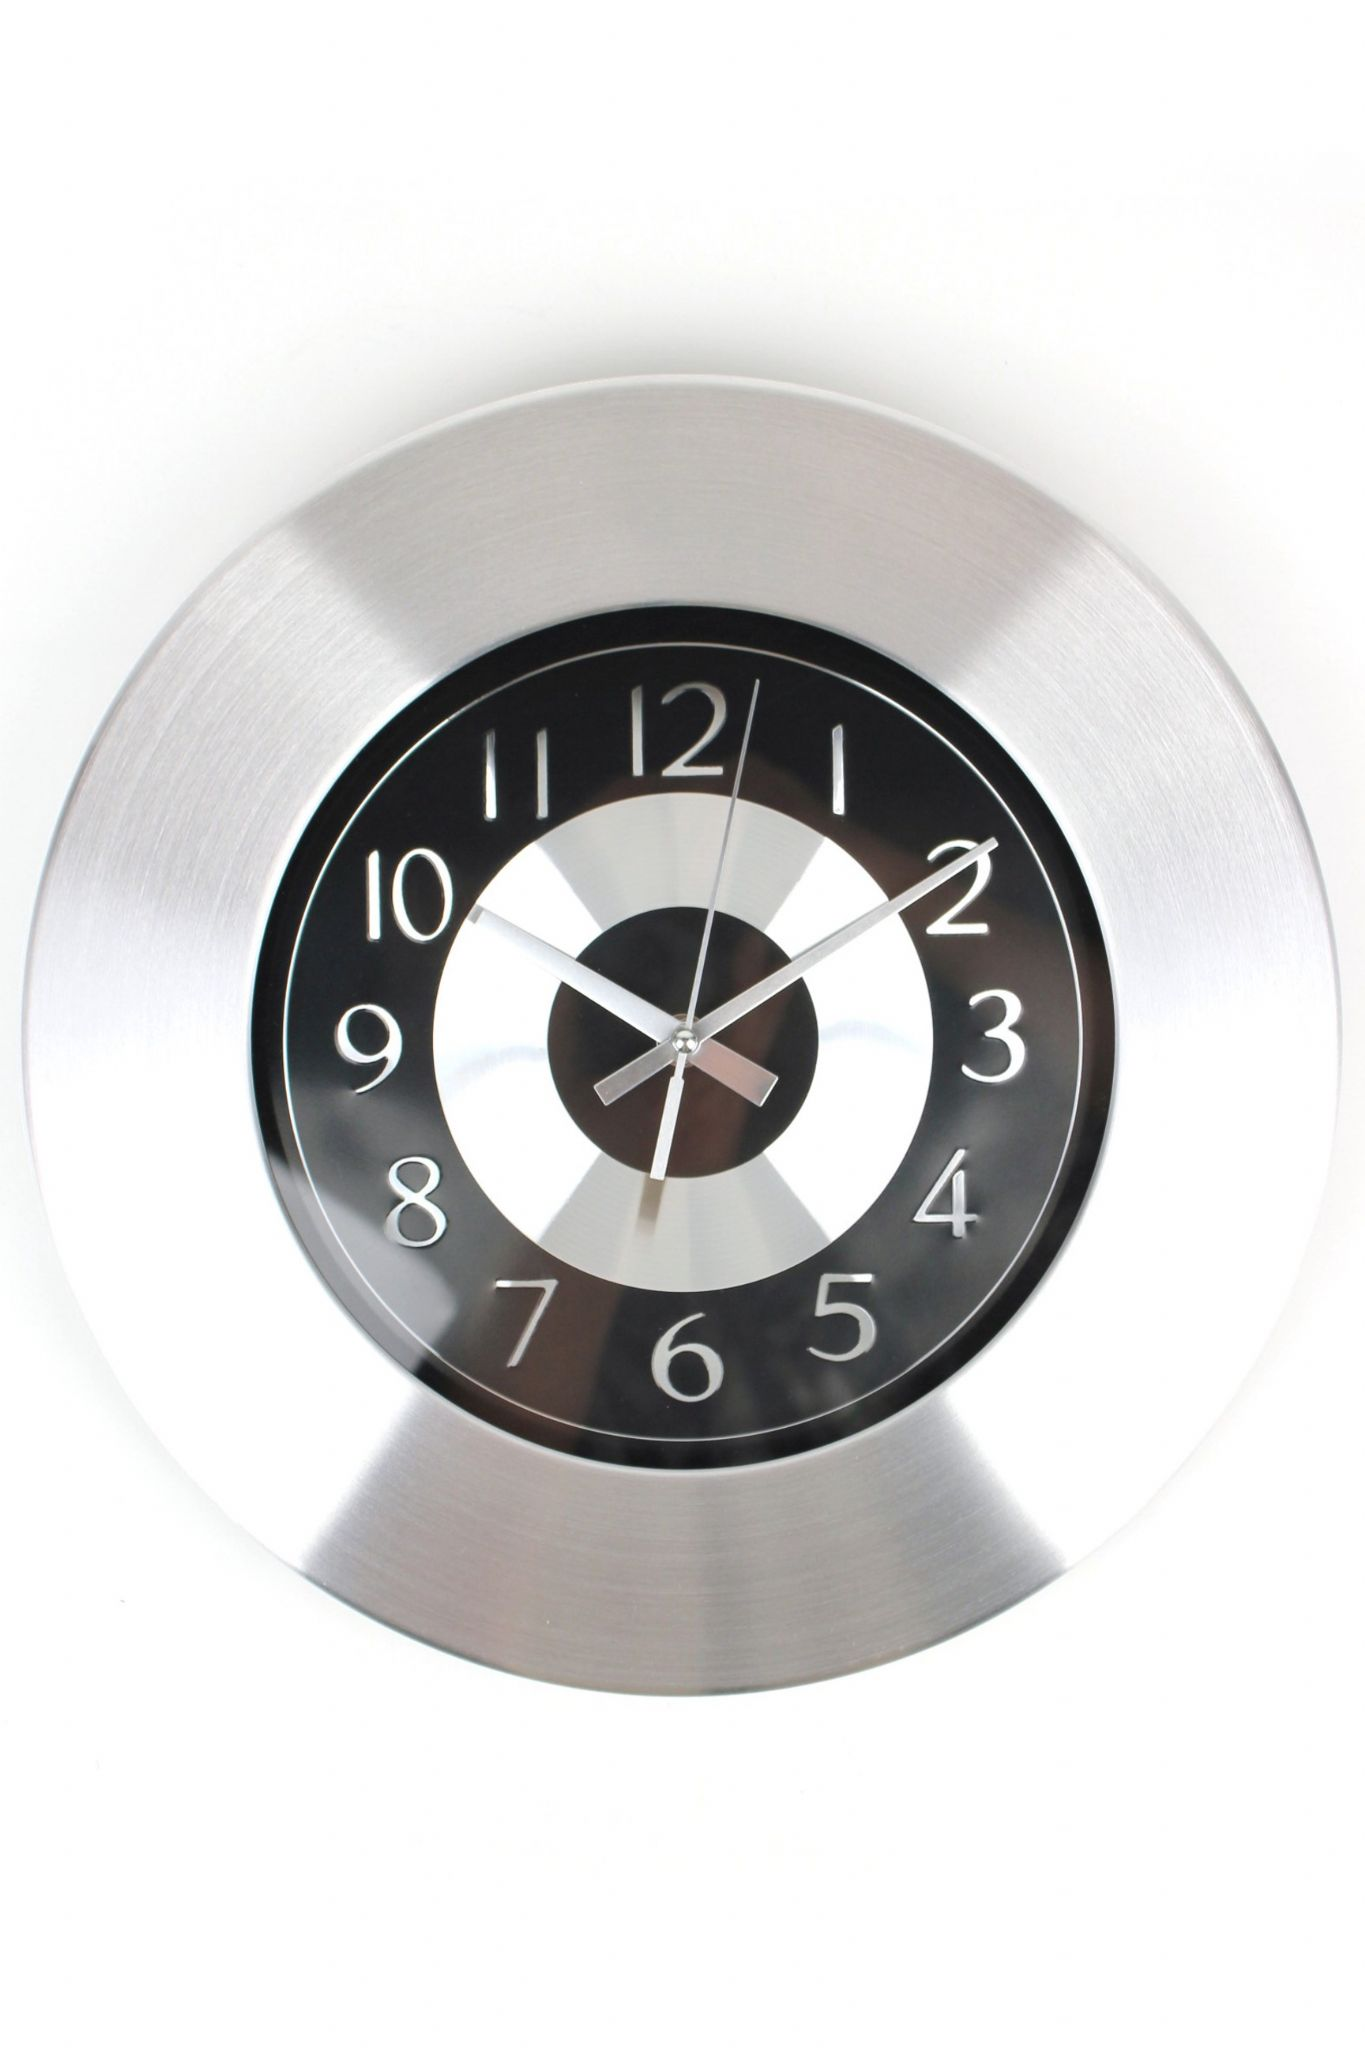 Stylish Round Wall Clock With Brushed Metal Face